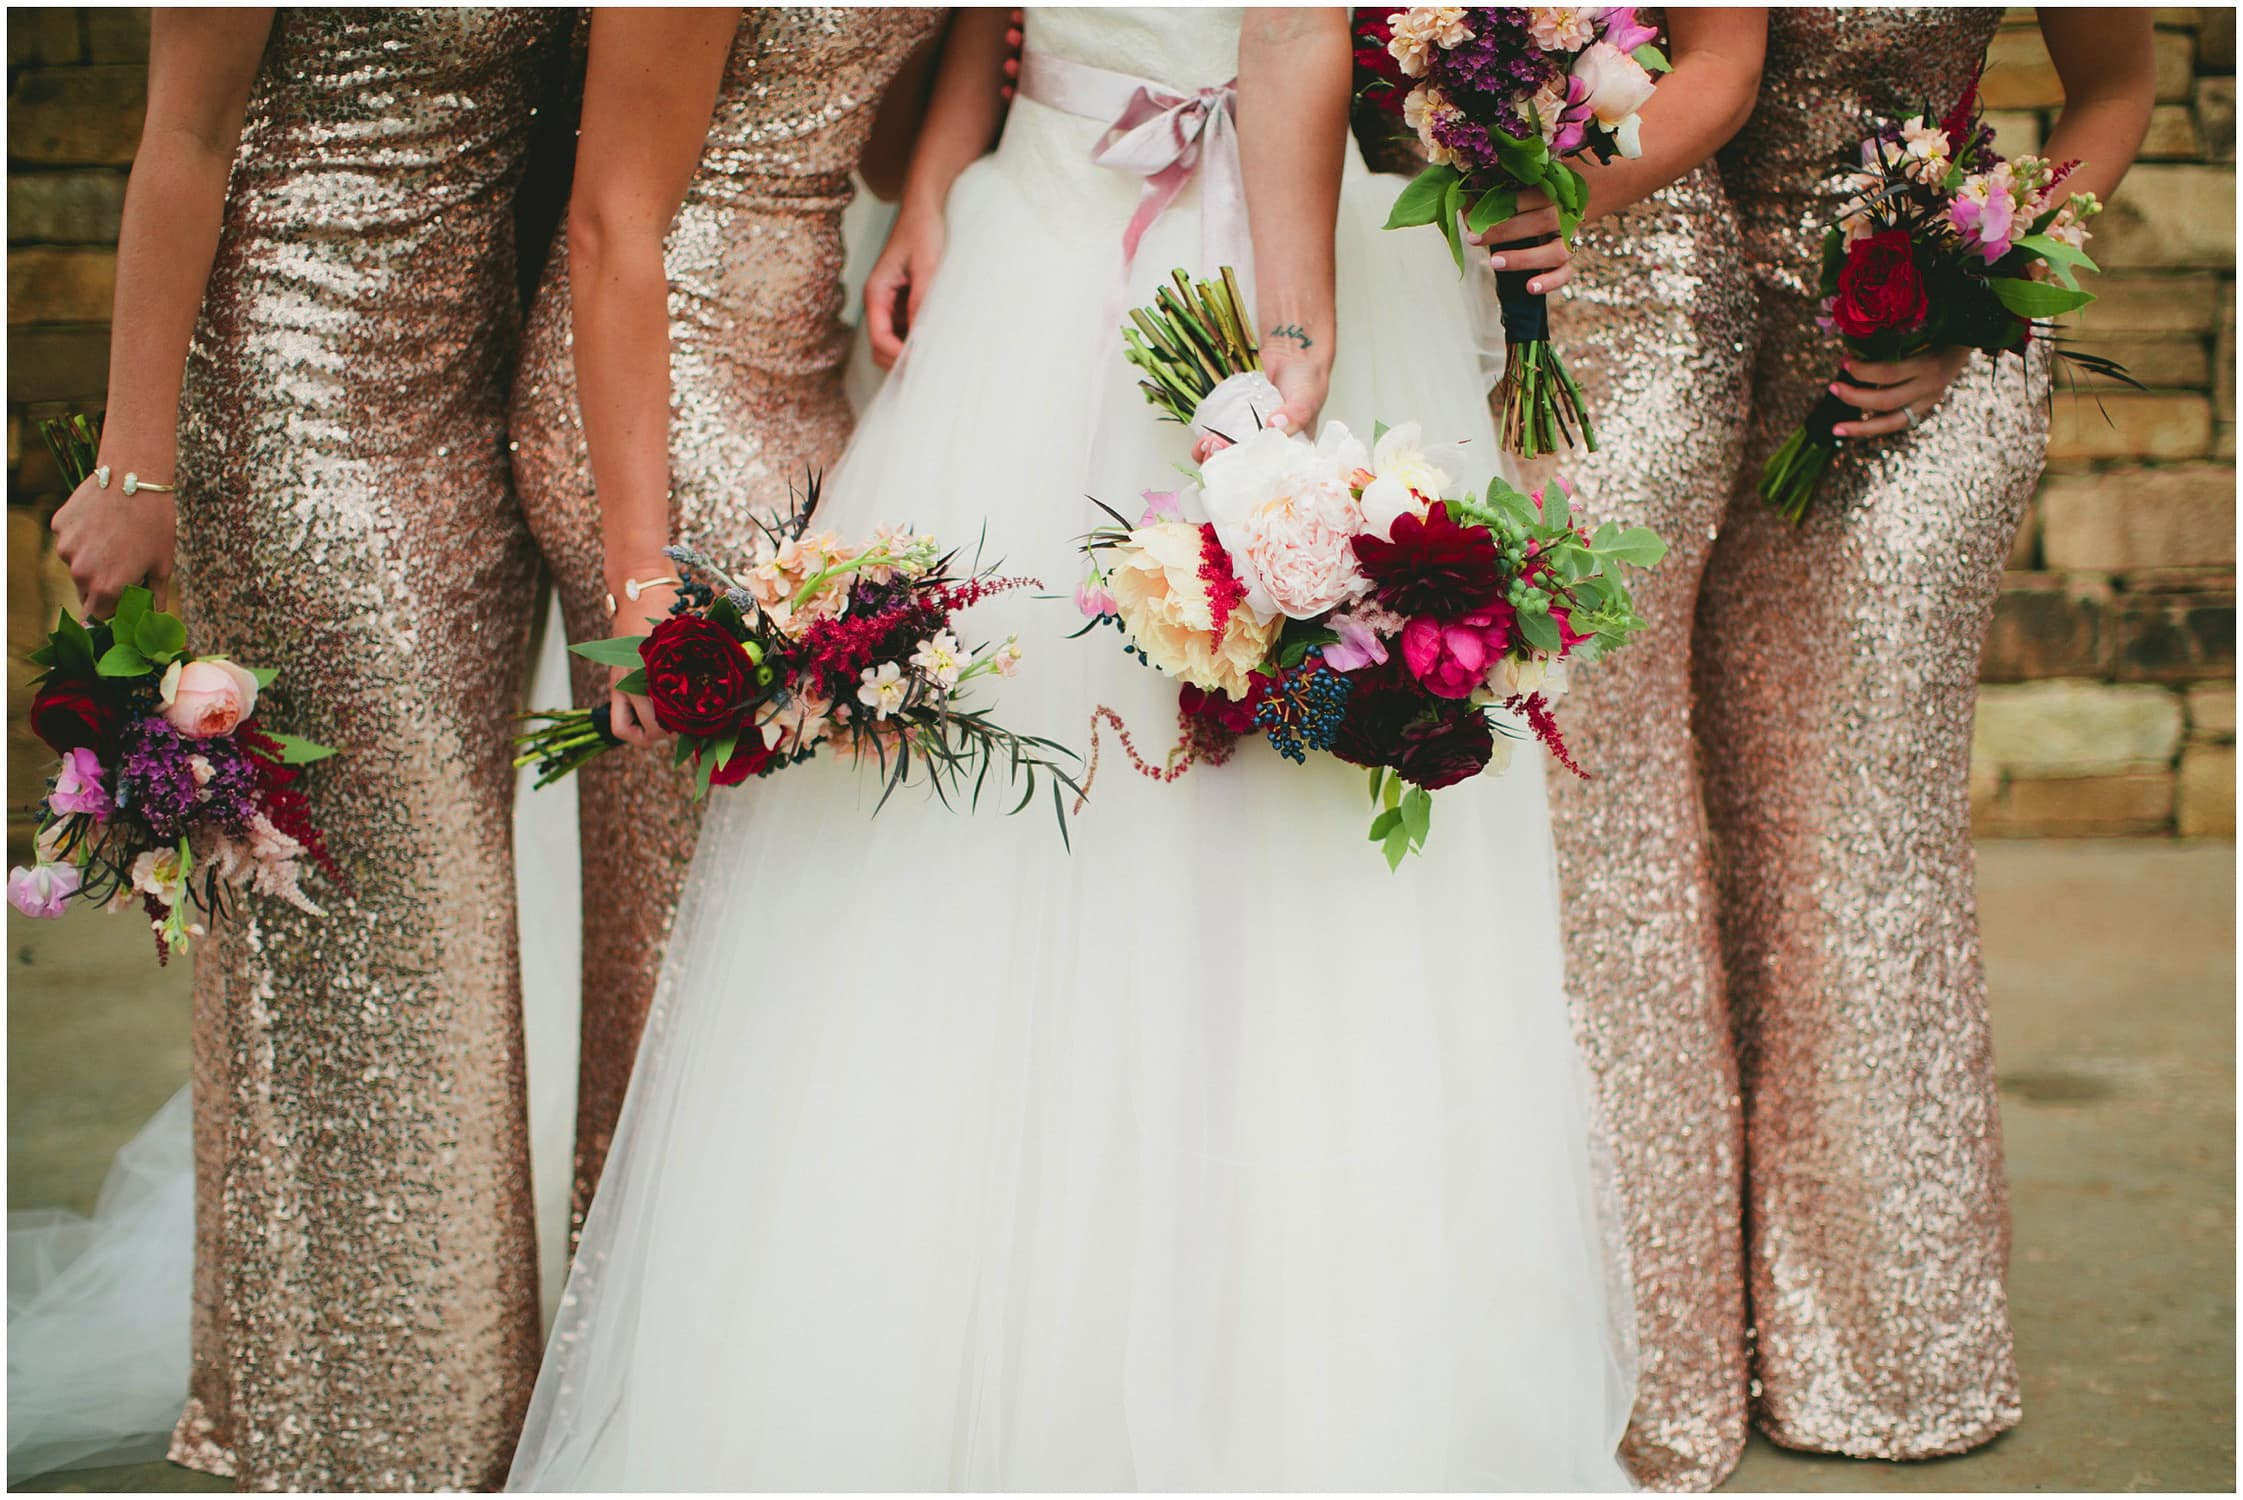 southwindhills_oklahoma_wedding0527_blogstomped